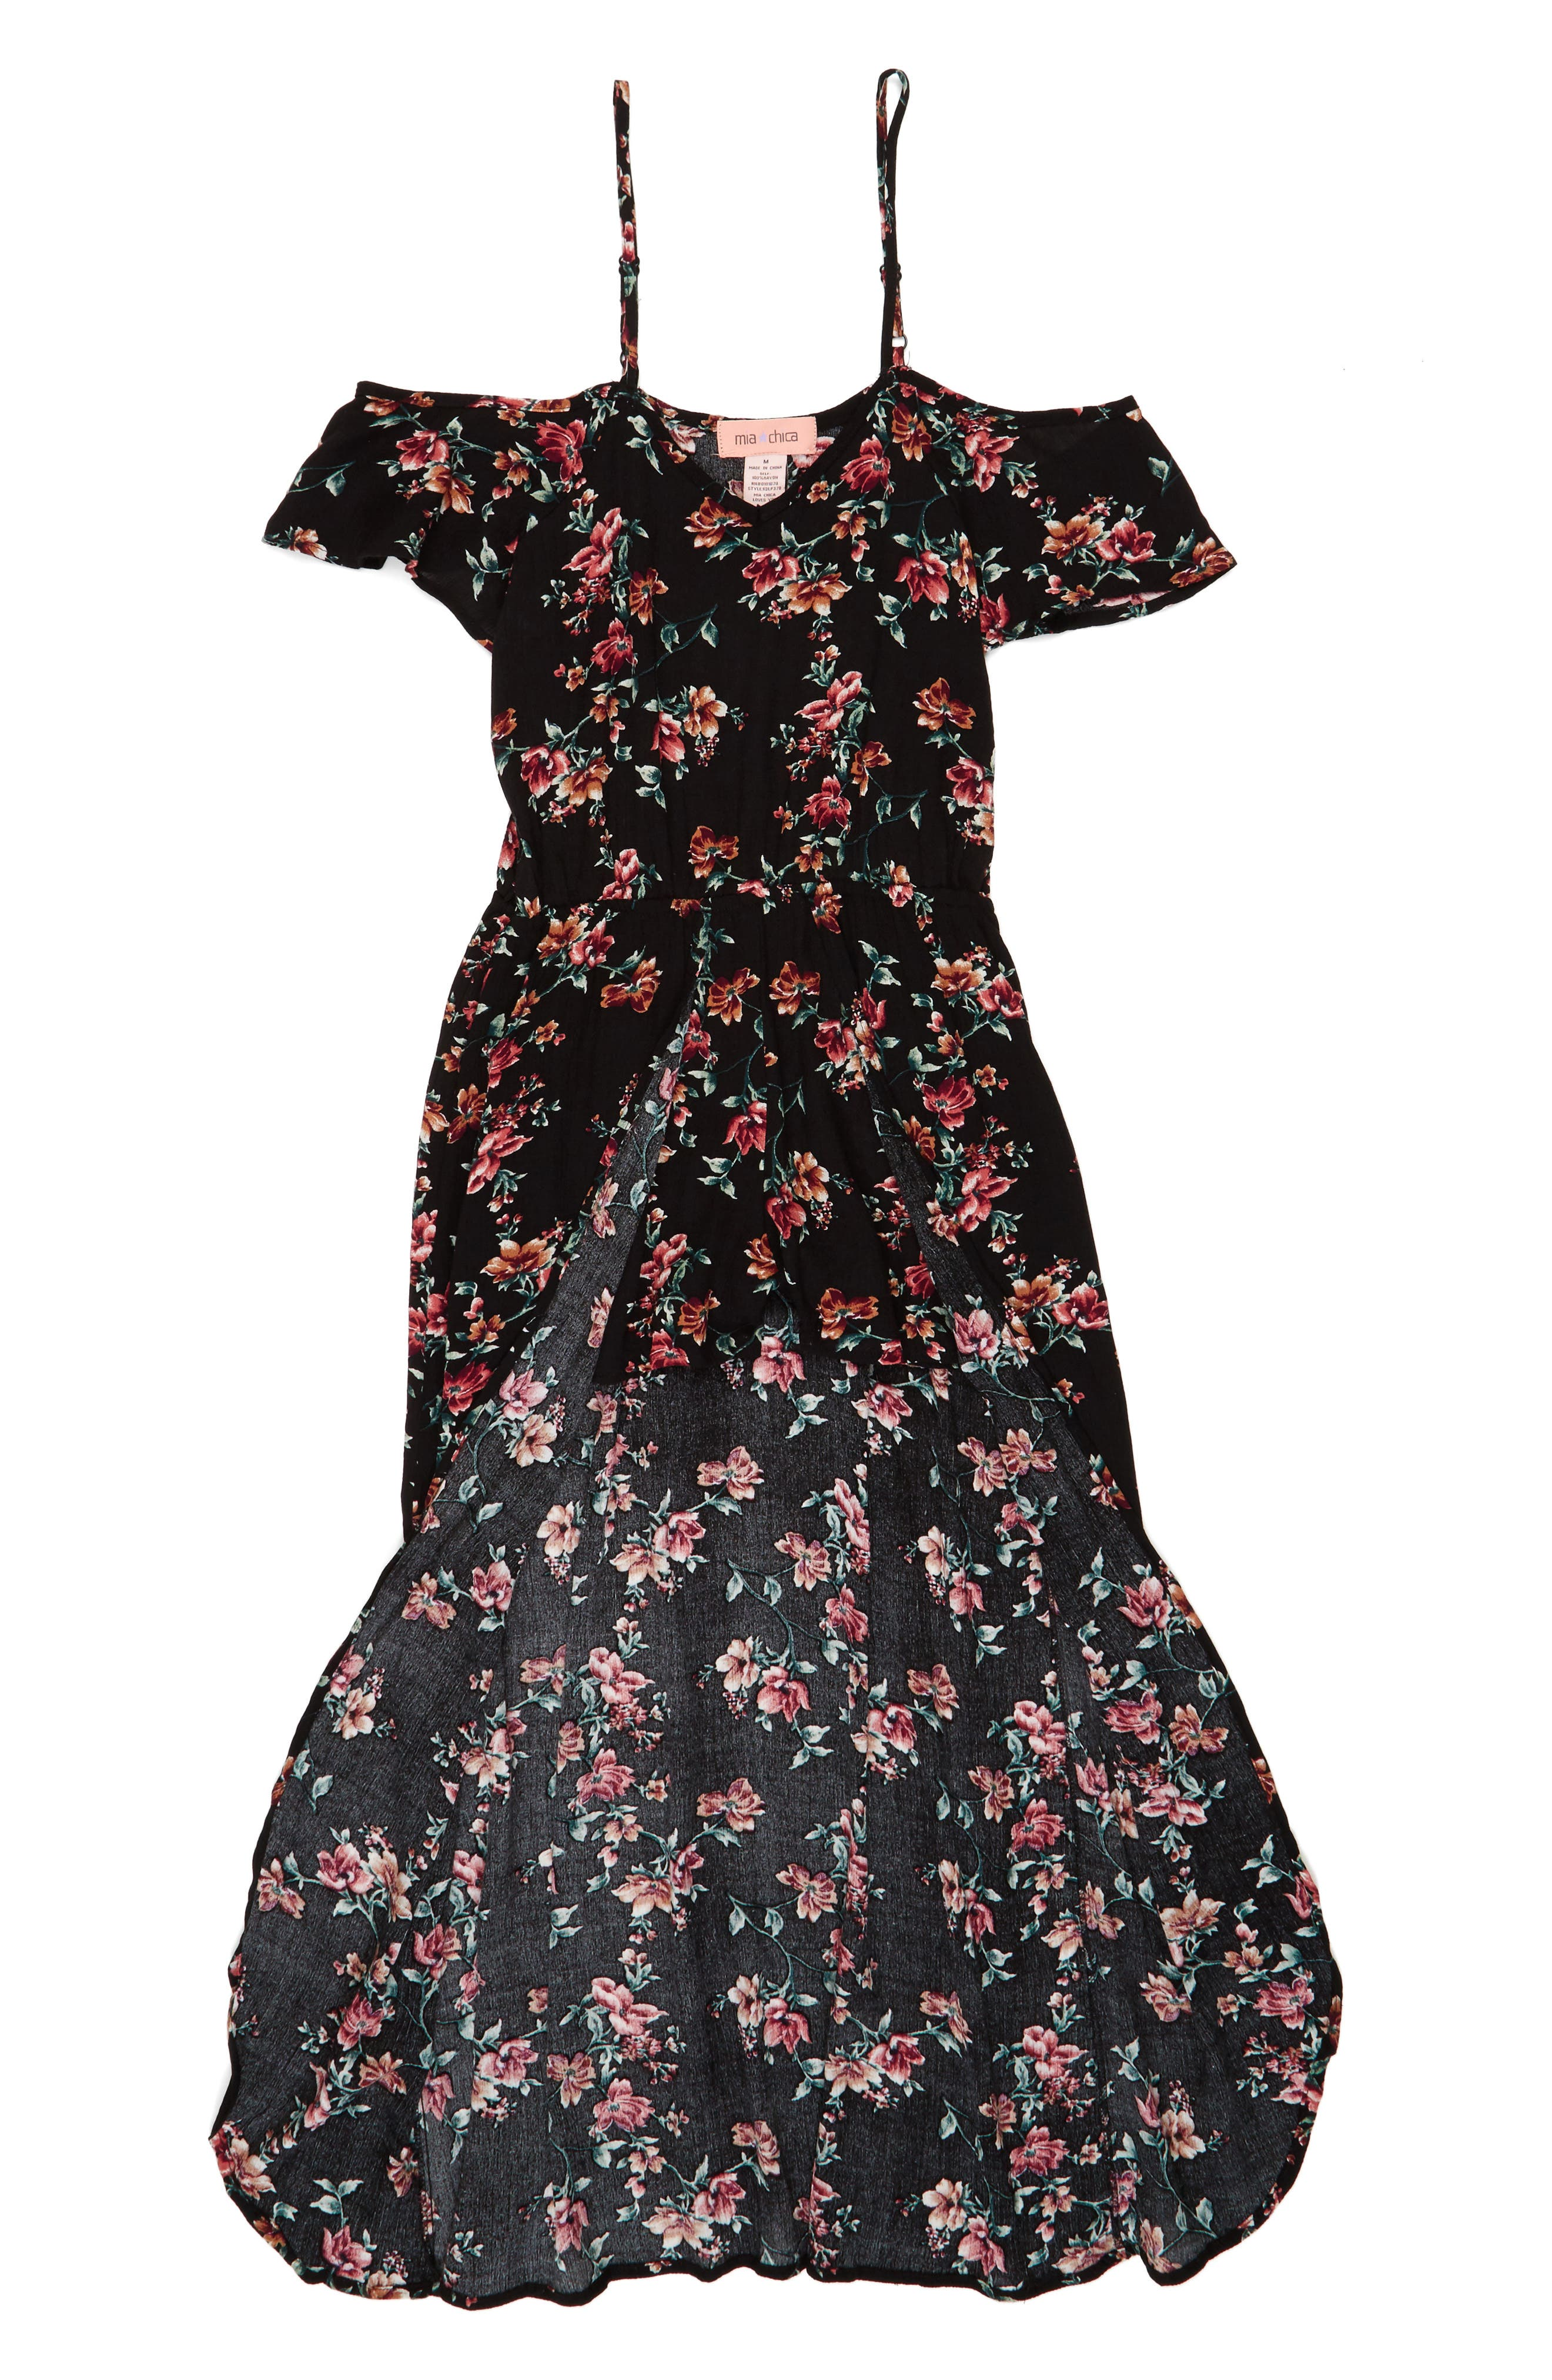 Alternate Image 1 Selected - Mia Chica Floral Print Maxi Romper (Big Girls)